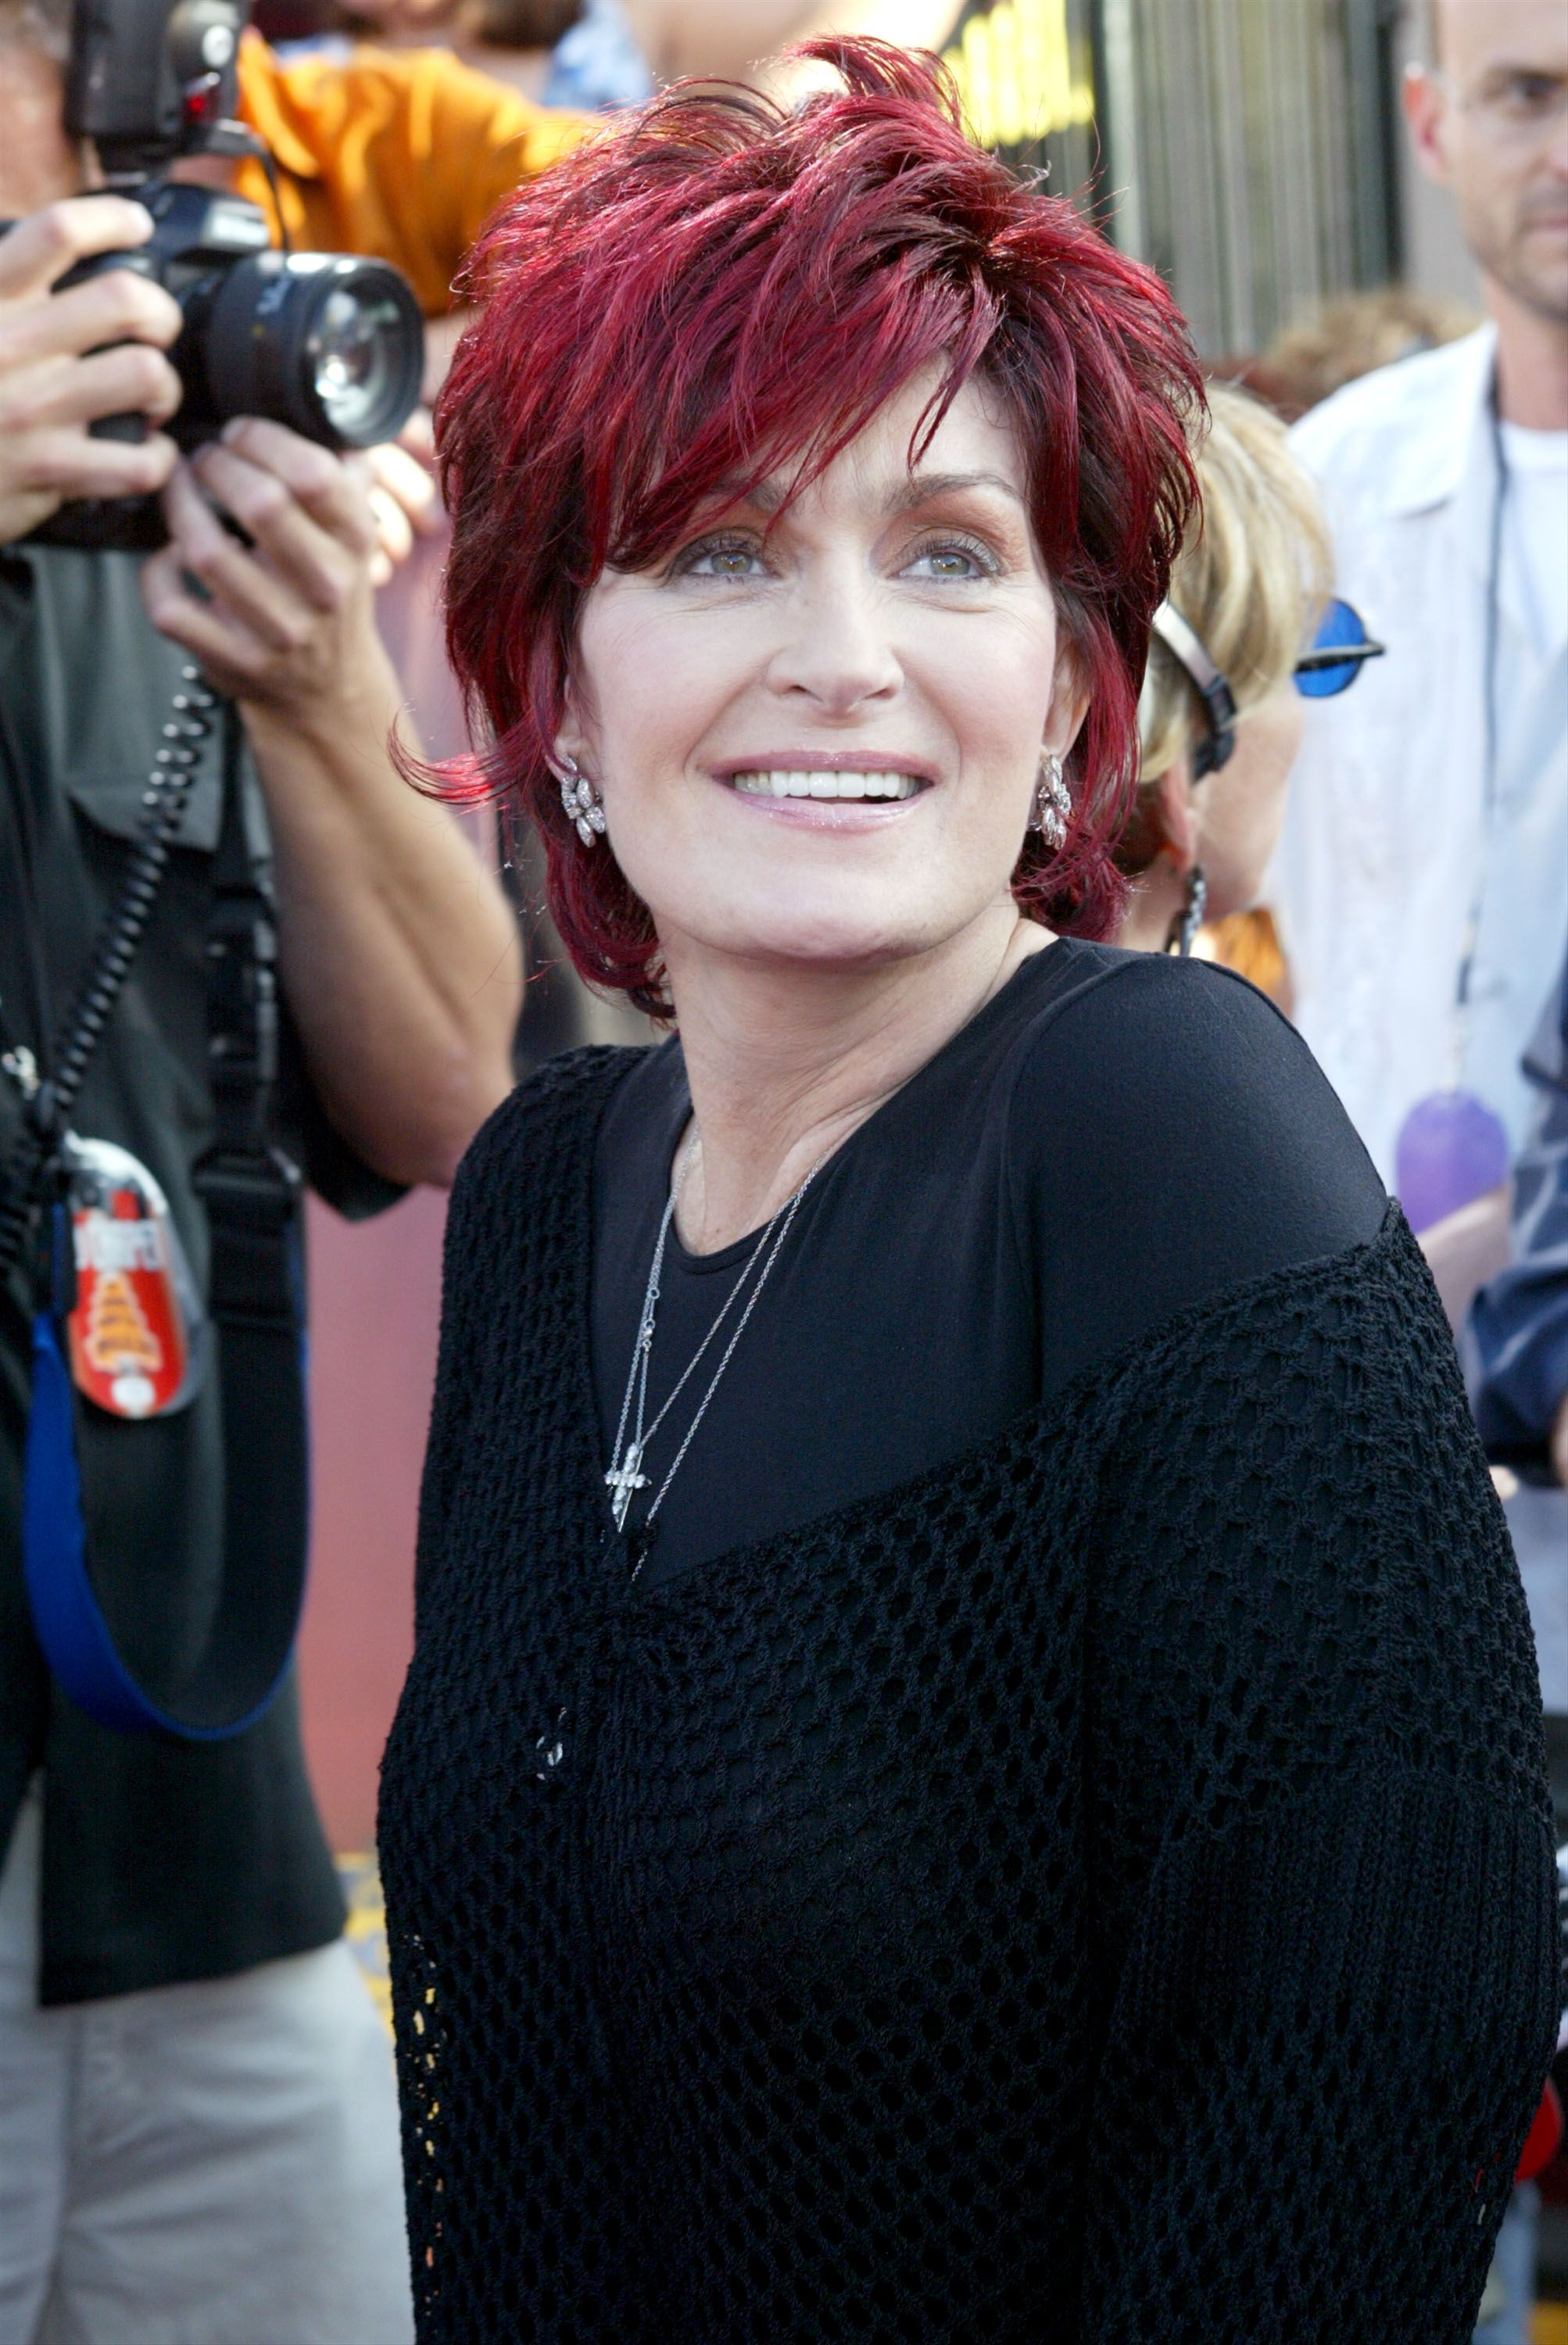 Sharon Osbourne during the 2002 MTV Movie Awards at The Shrine Auditorium June 1, 2002. | Source: Getty Images